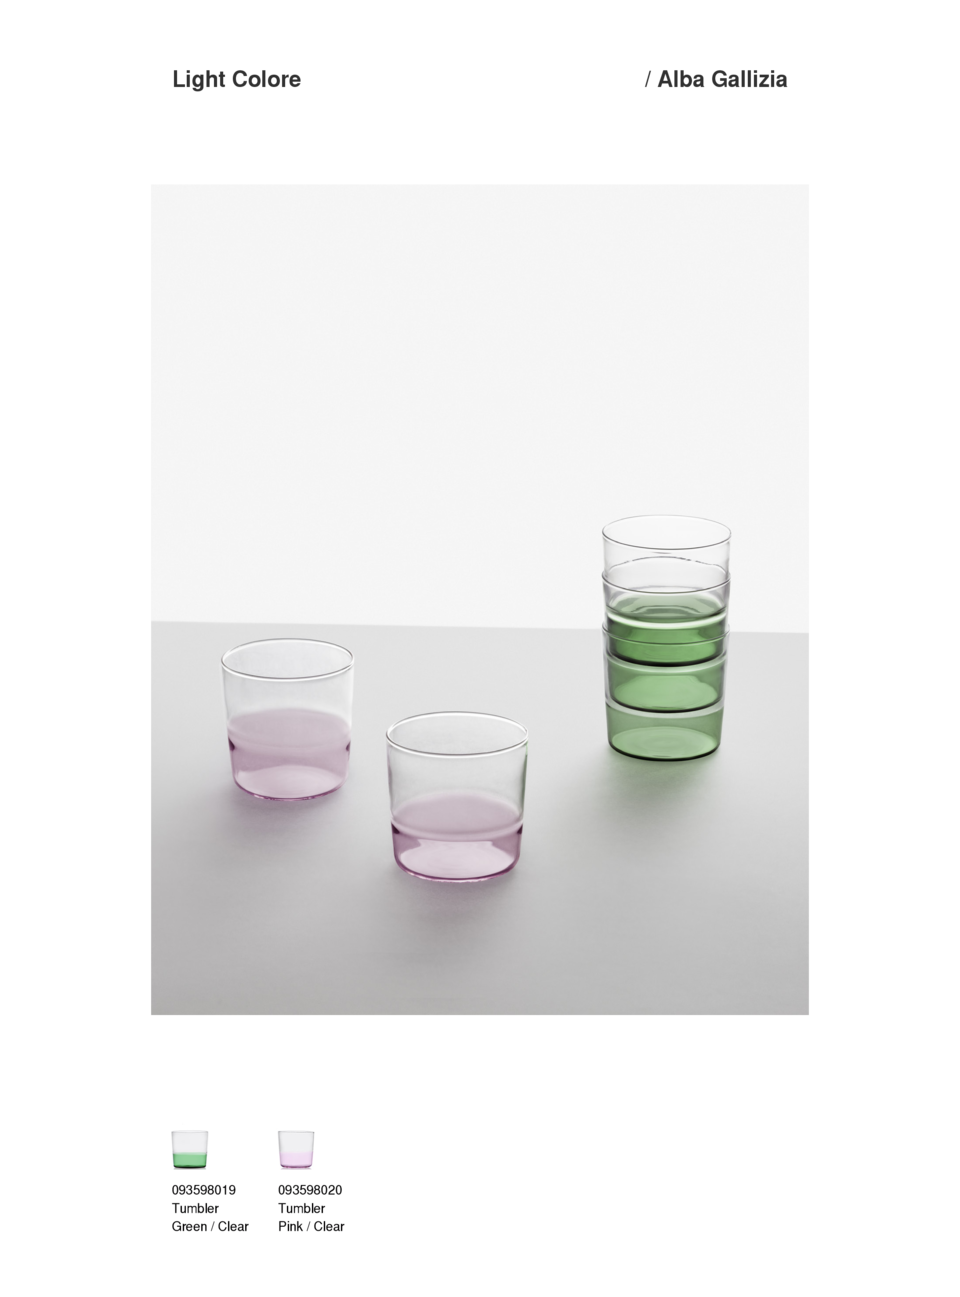 Light Colore  093598019 Tumbler Green   Clear  093598020 Tumbler Pink   Clear    Alba Gallizia